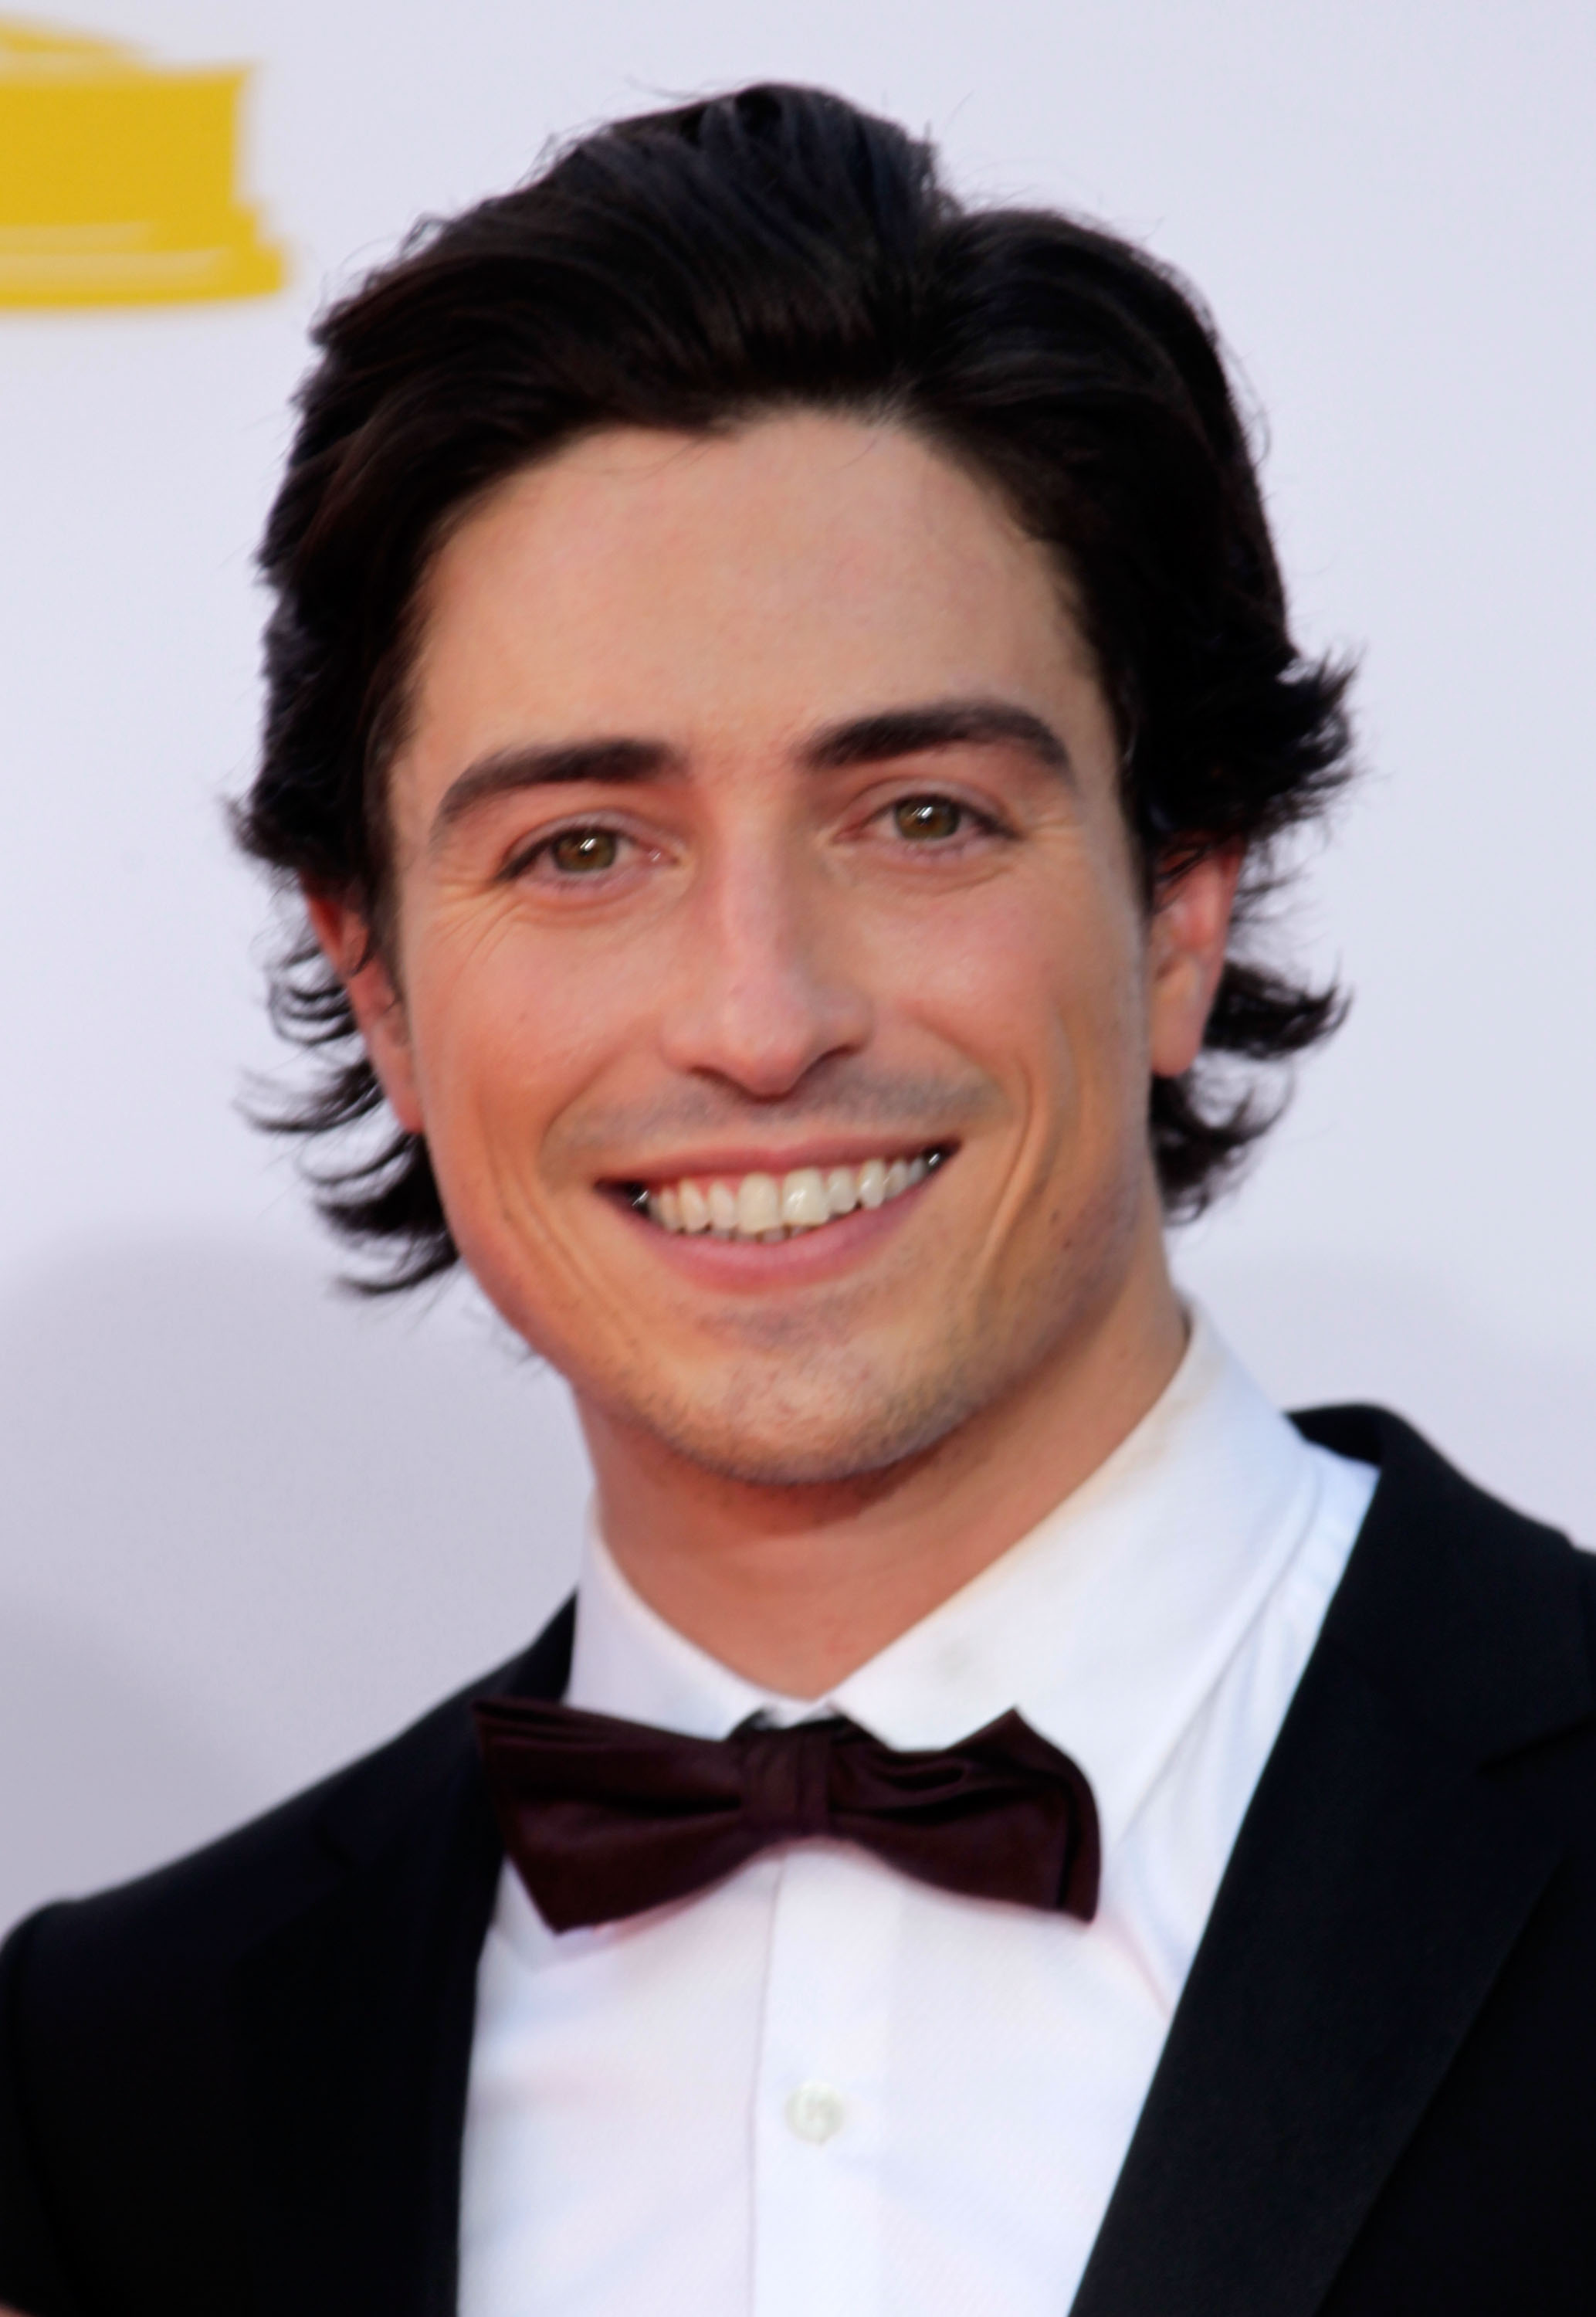 Ben Feldman brought more cool factor than his character does on Mad ...: www.popsugar.com/love/photo-gallery/25112528/image/25113978/Ben...